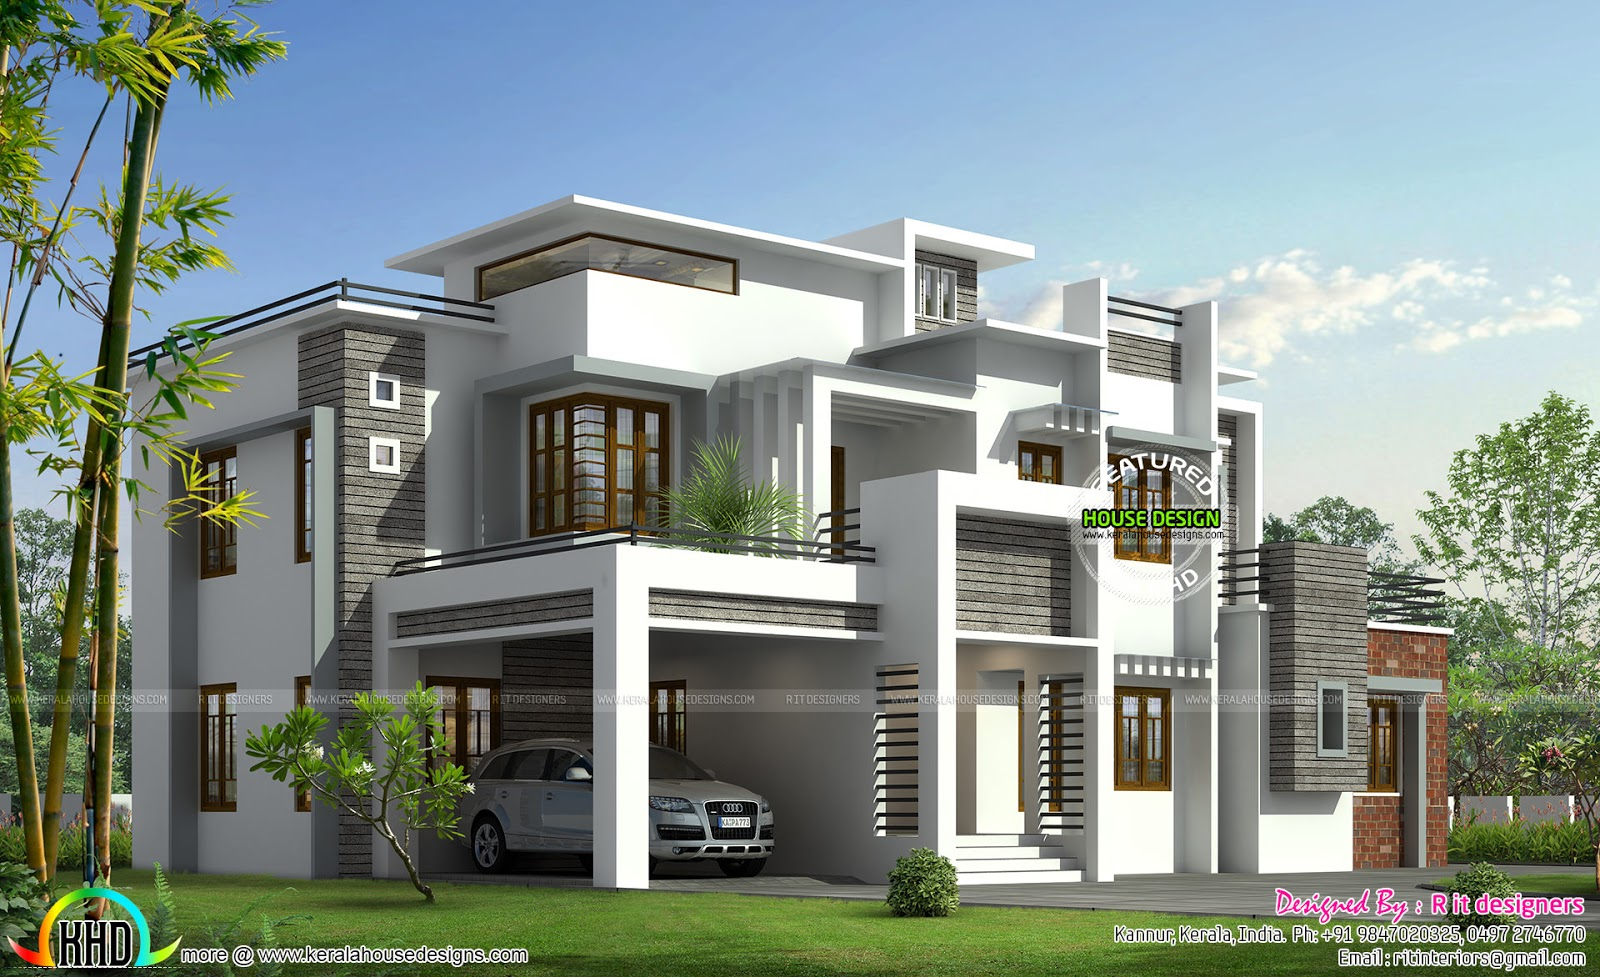 Box model contemporary house kerala home design and for Contemporary home plans